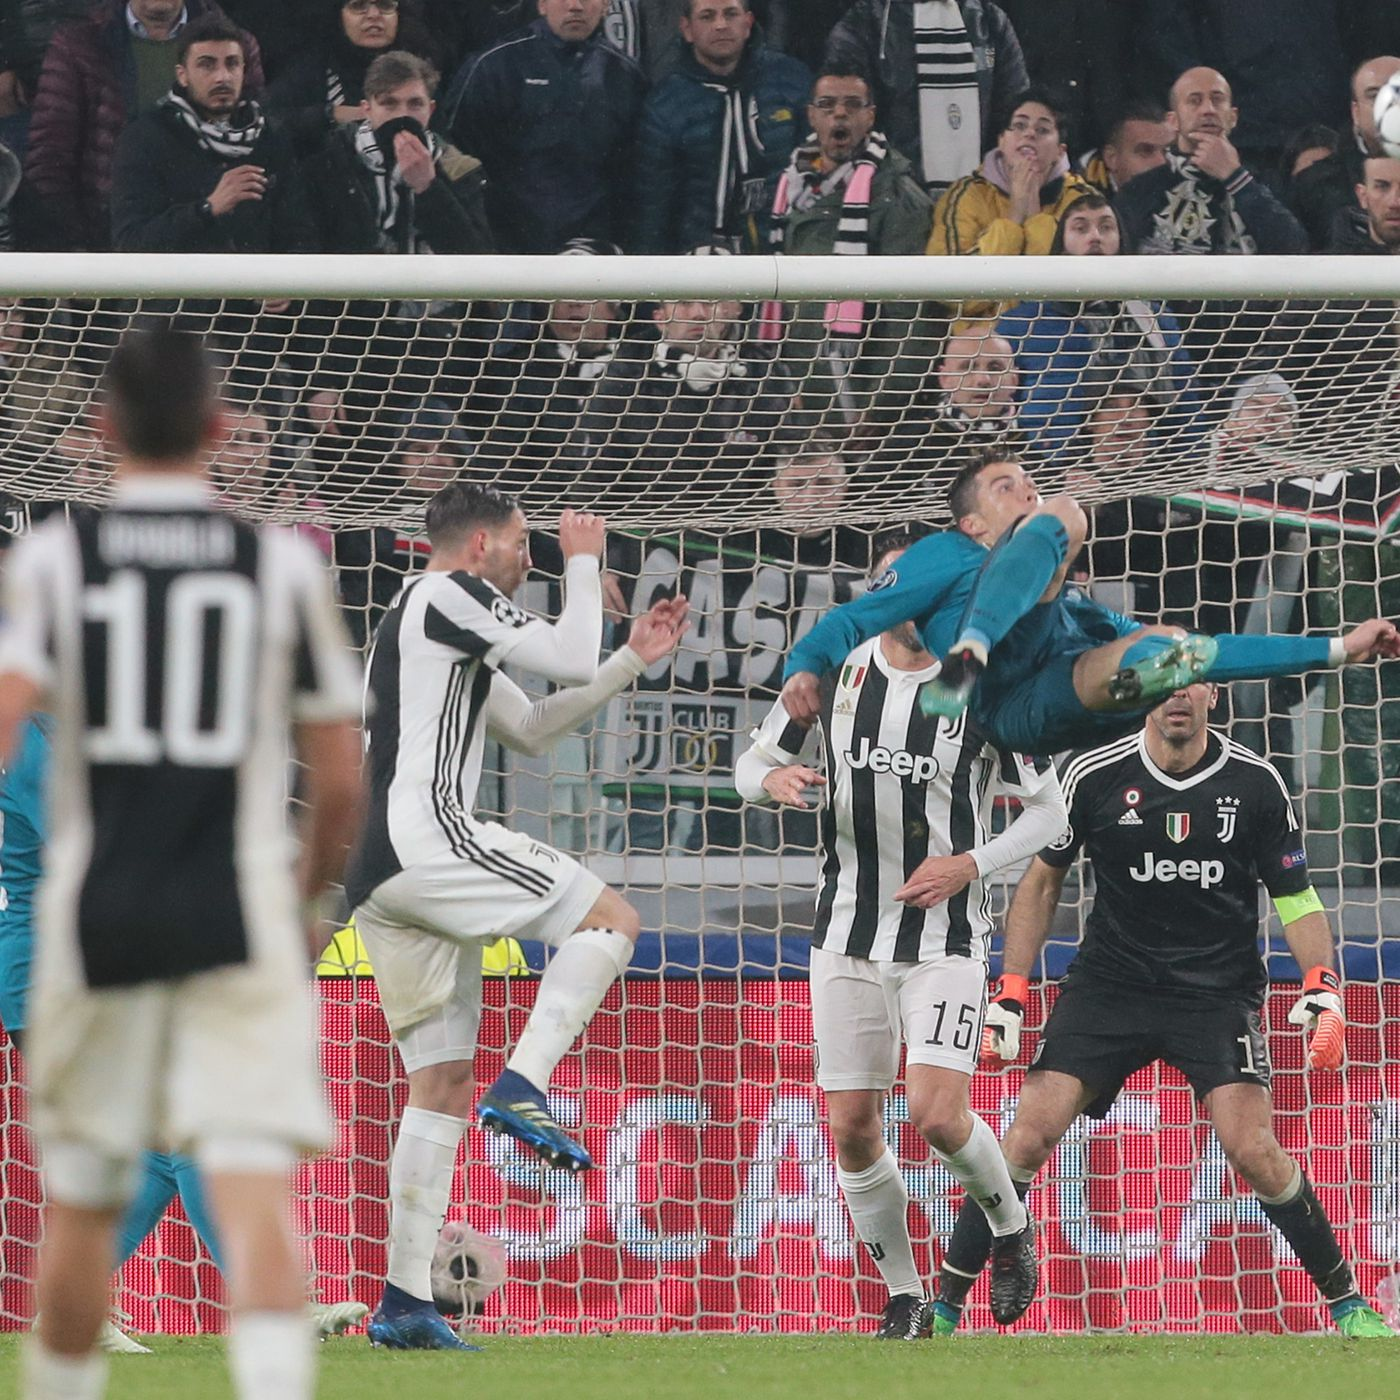 Cristiano Ronaldo S Goal Vs Juventus Shows That He Can T Be Compared Sbnation Com